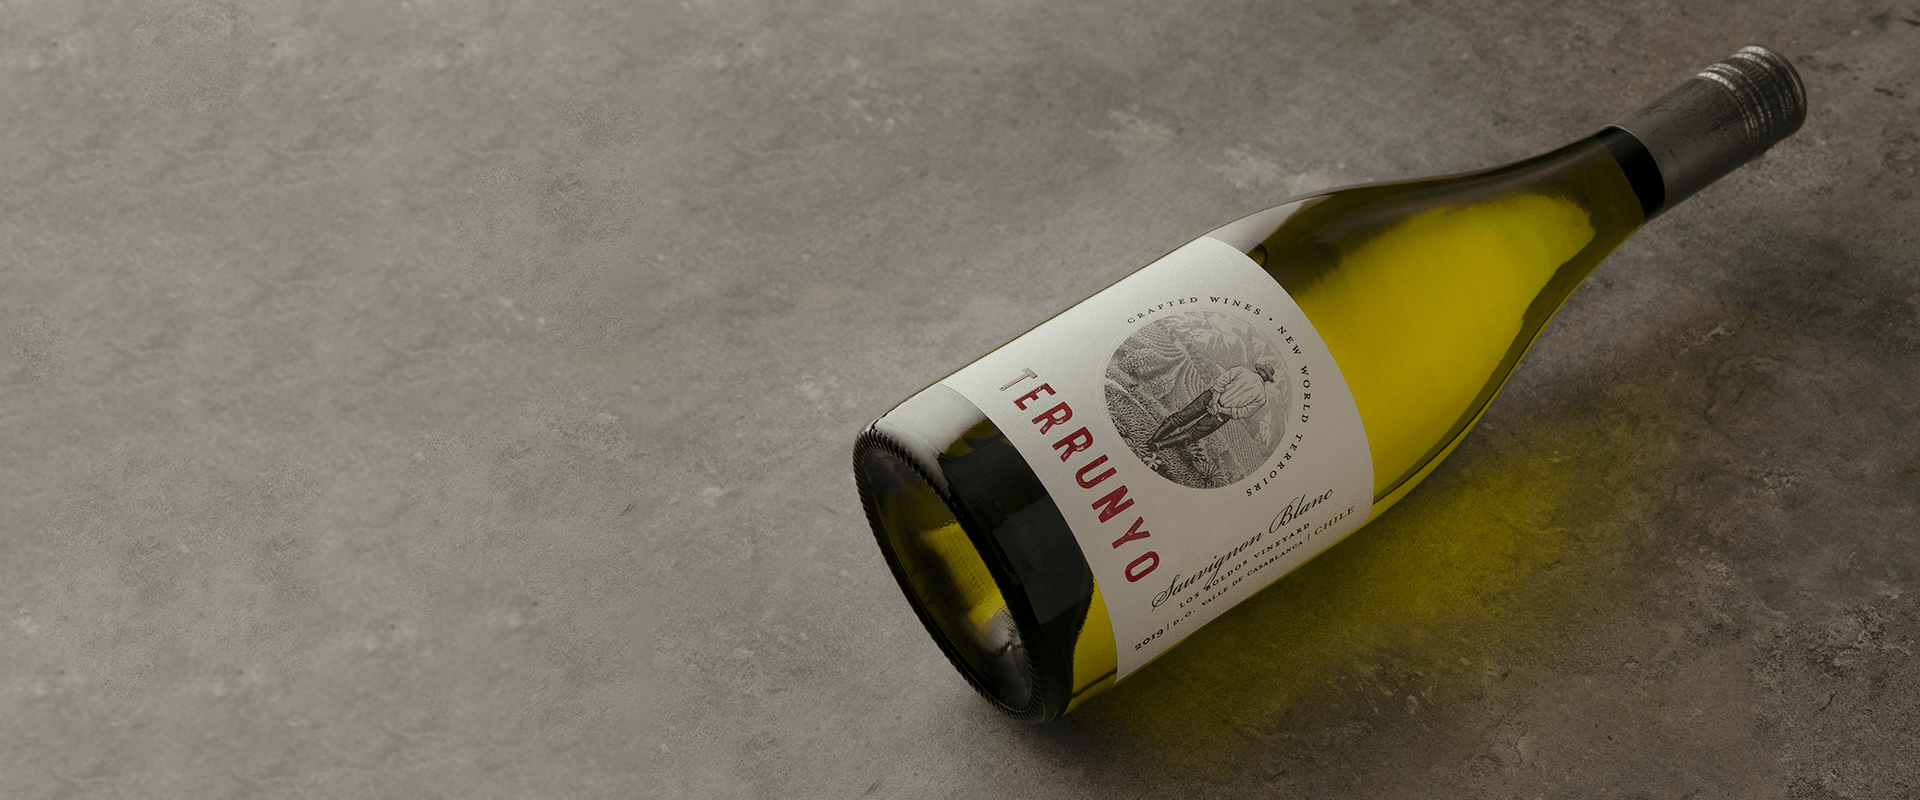 Terrunyo is named best Sauvignon Blanc from Chile and best wine from Casablanca Valley